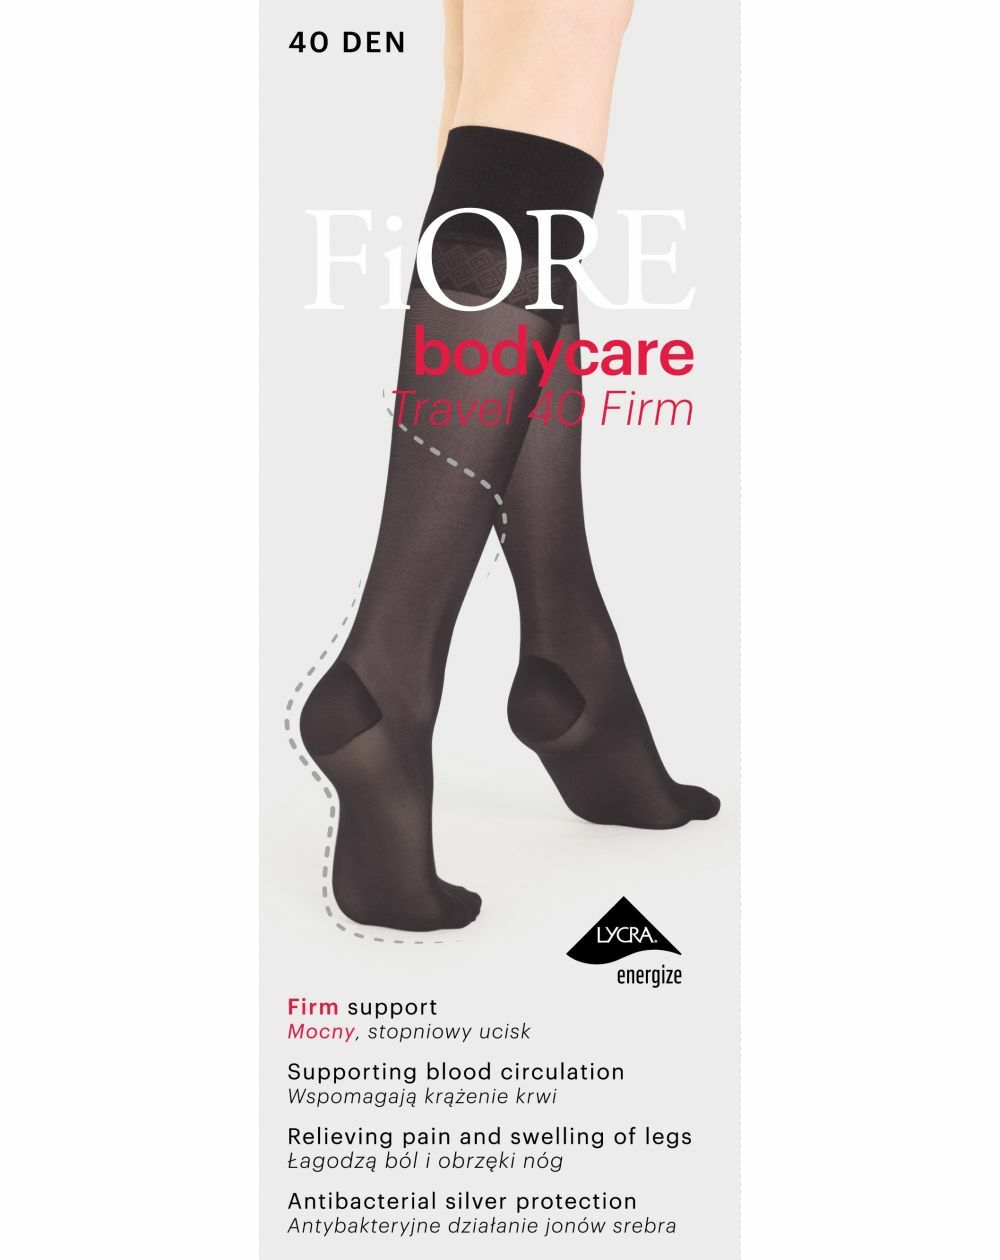 Fiore TRAVEL FIRM 40